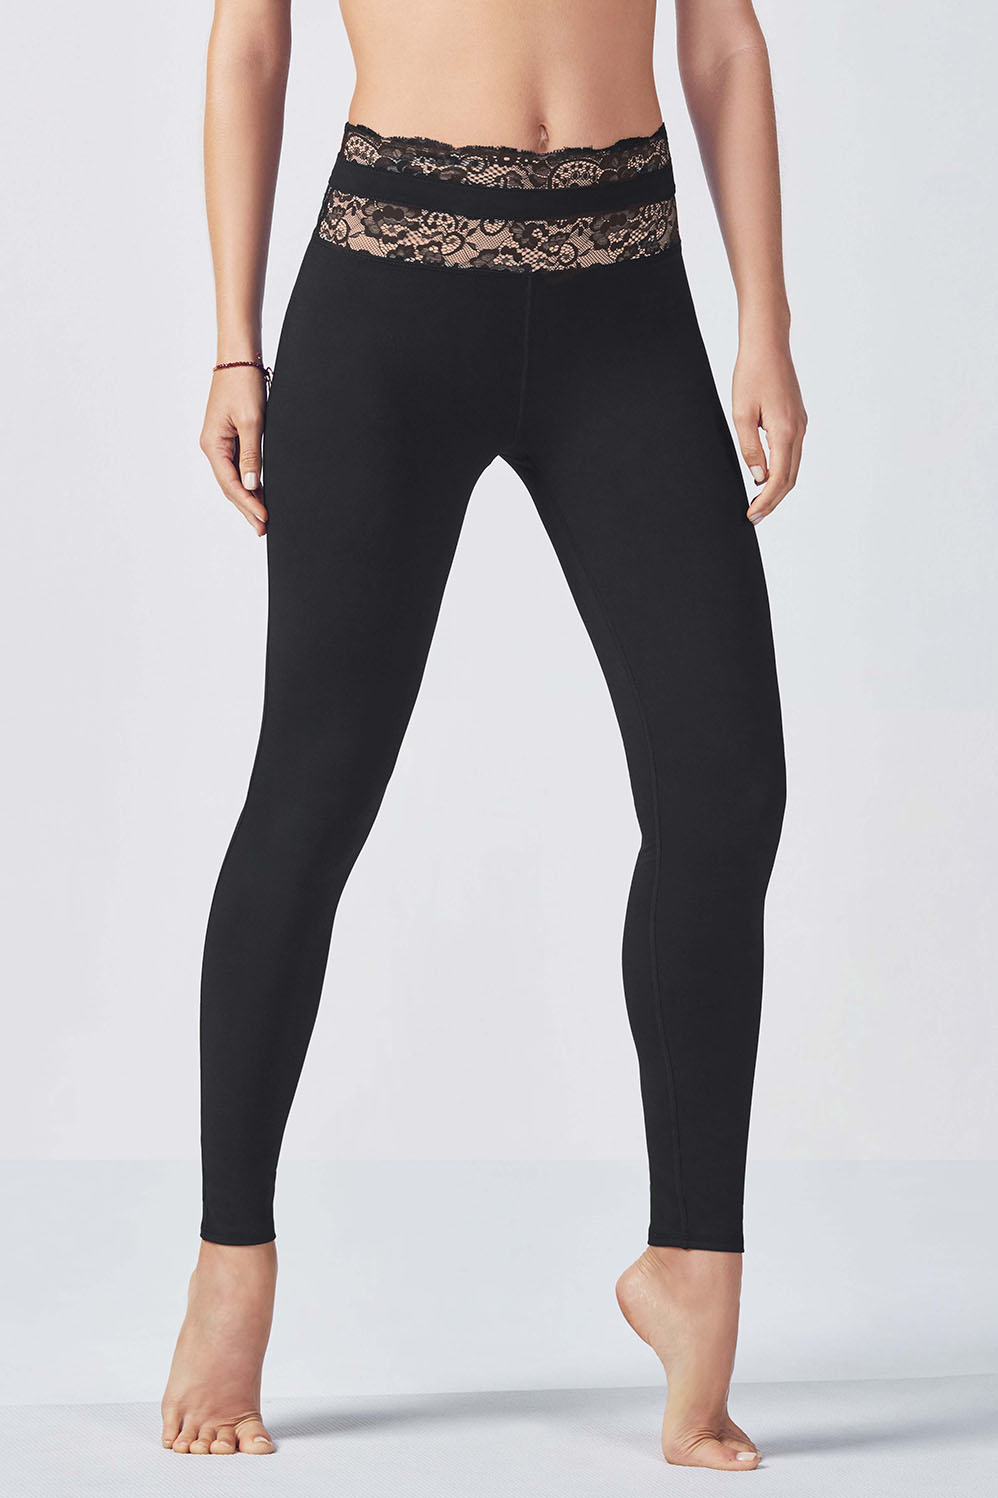 f1097435ce8c05 High-Waisted Statement PowerHold® Legging - Fabletics